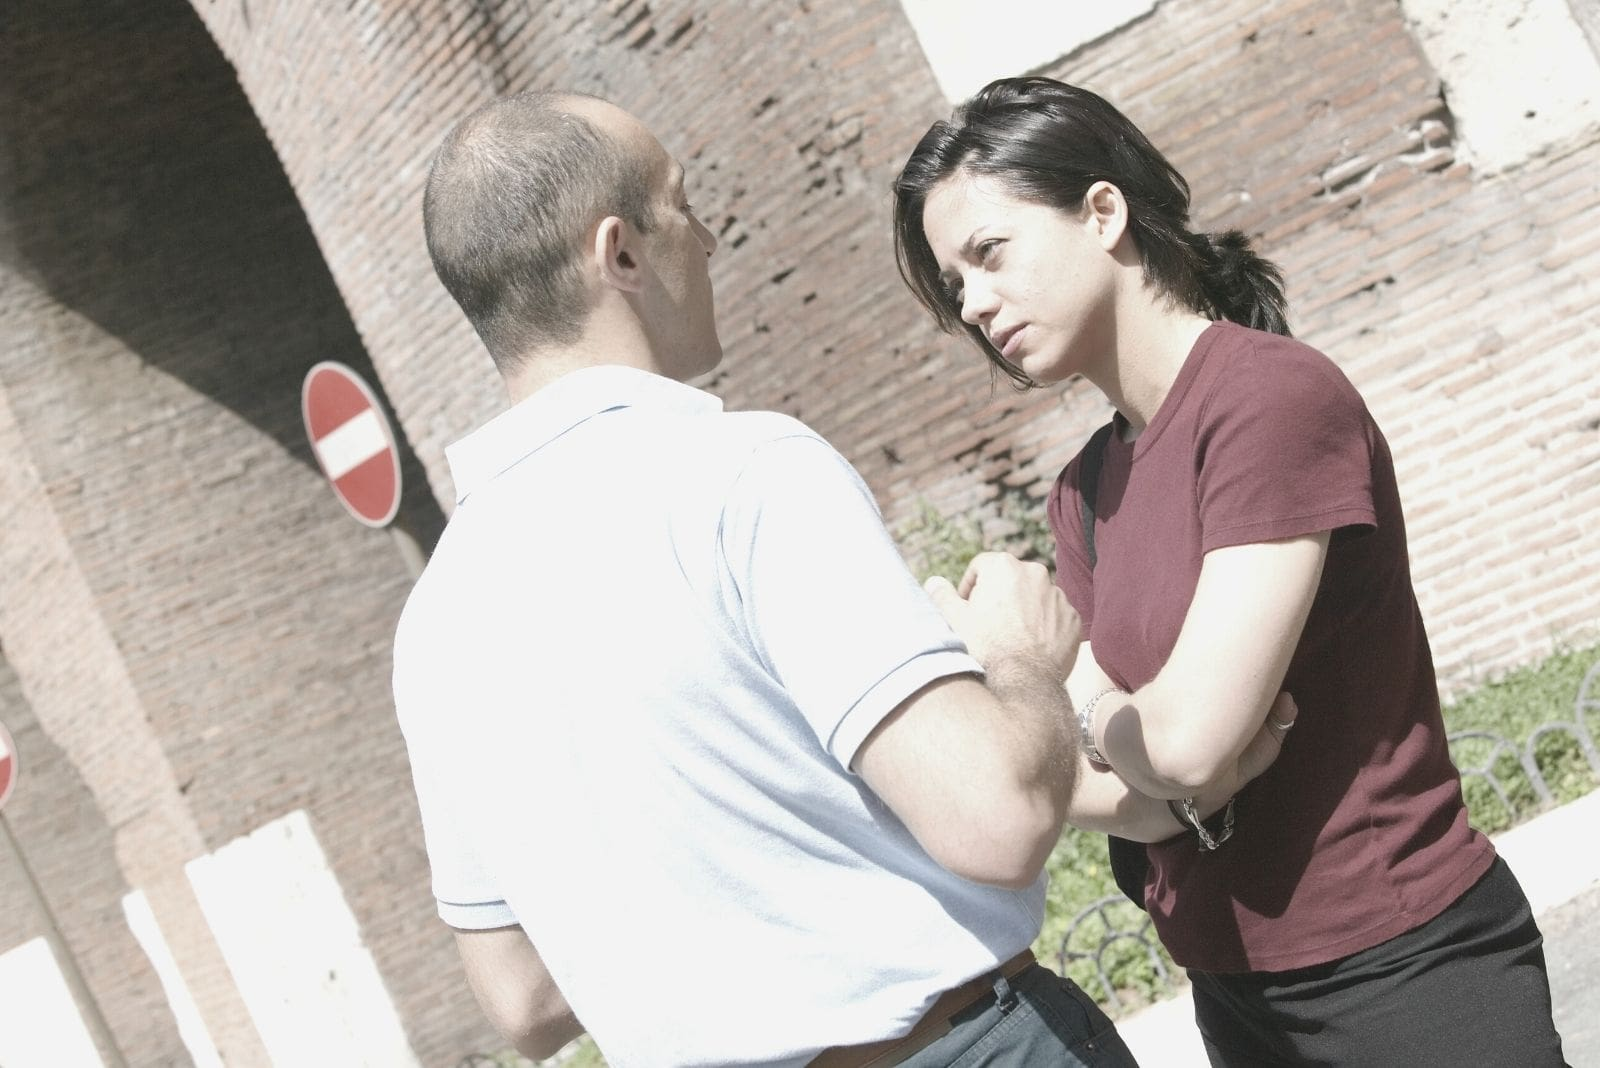 couple arguing outdoors standing near a brick wall building